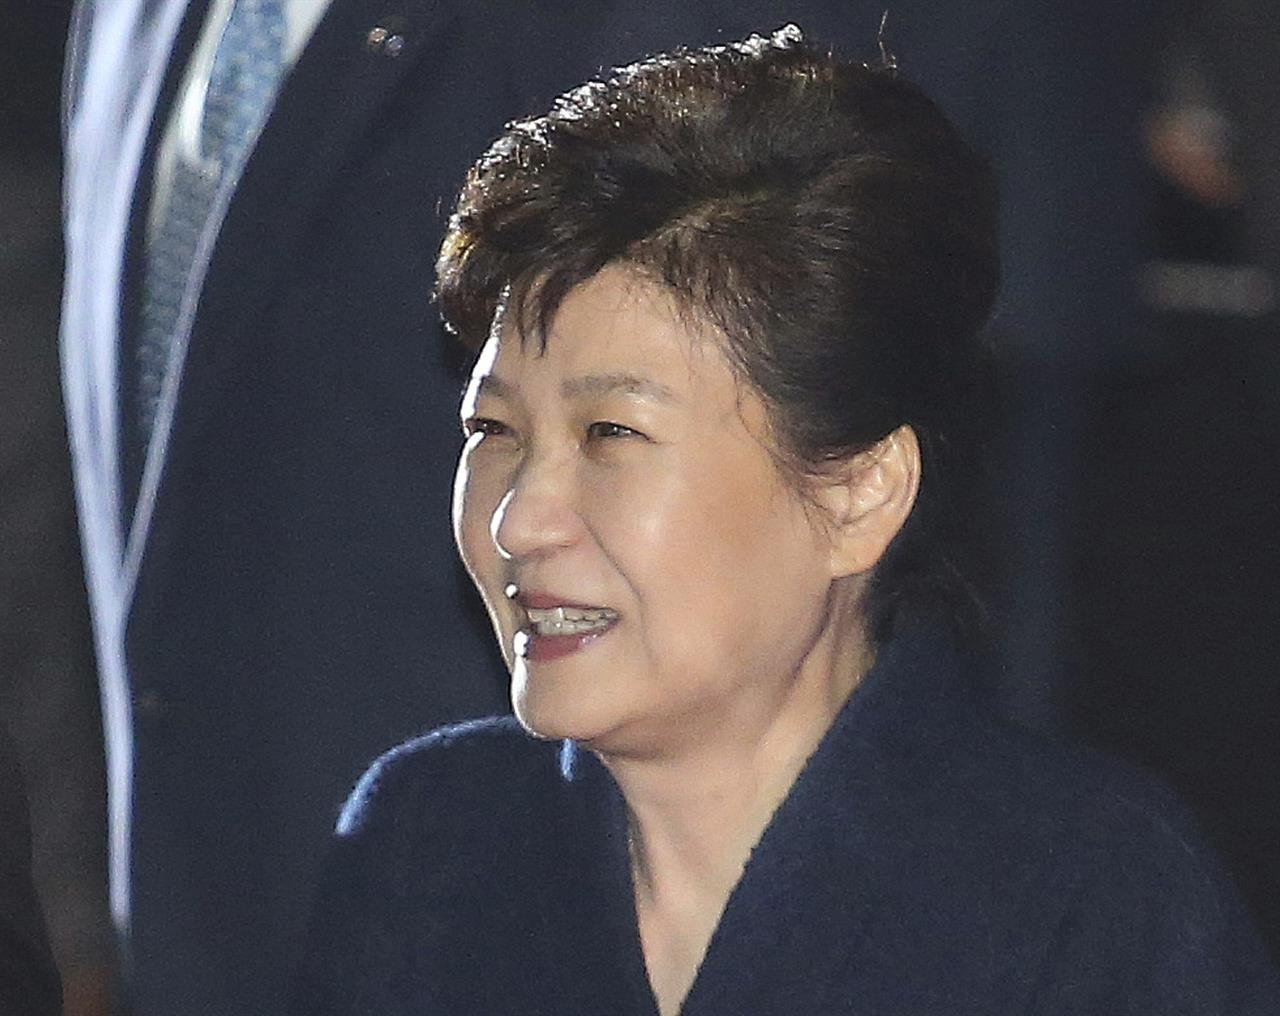 In this Sunday, March 12, 2017 photo, ousted South Korean President Park Geun-hye smiles as she is greeted by supporters upon her arrival at her private home in Seoul, South Korea. Park expressed defiance toward the corruption allegations against her as she vacated the presidential palace and returned to her home on Sunday, two days after the Constitutional Court removed her from office.